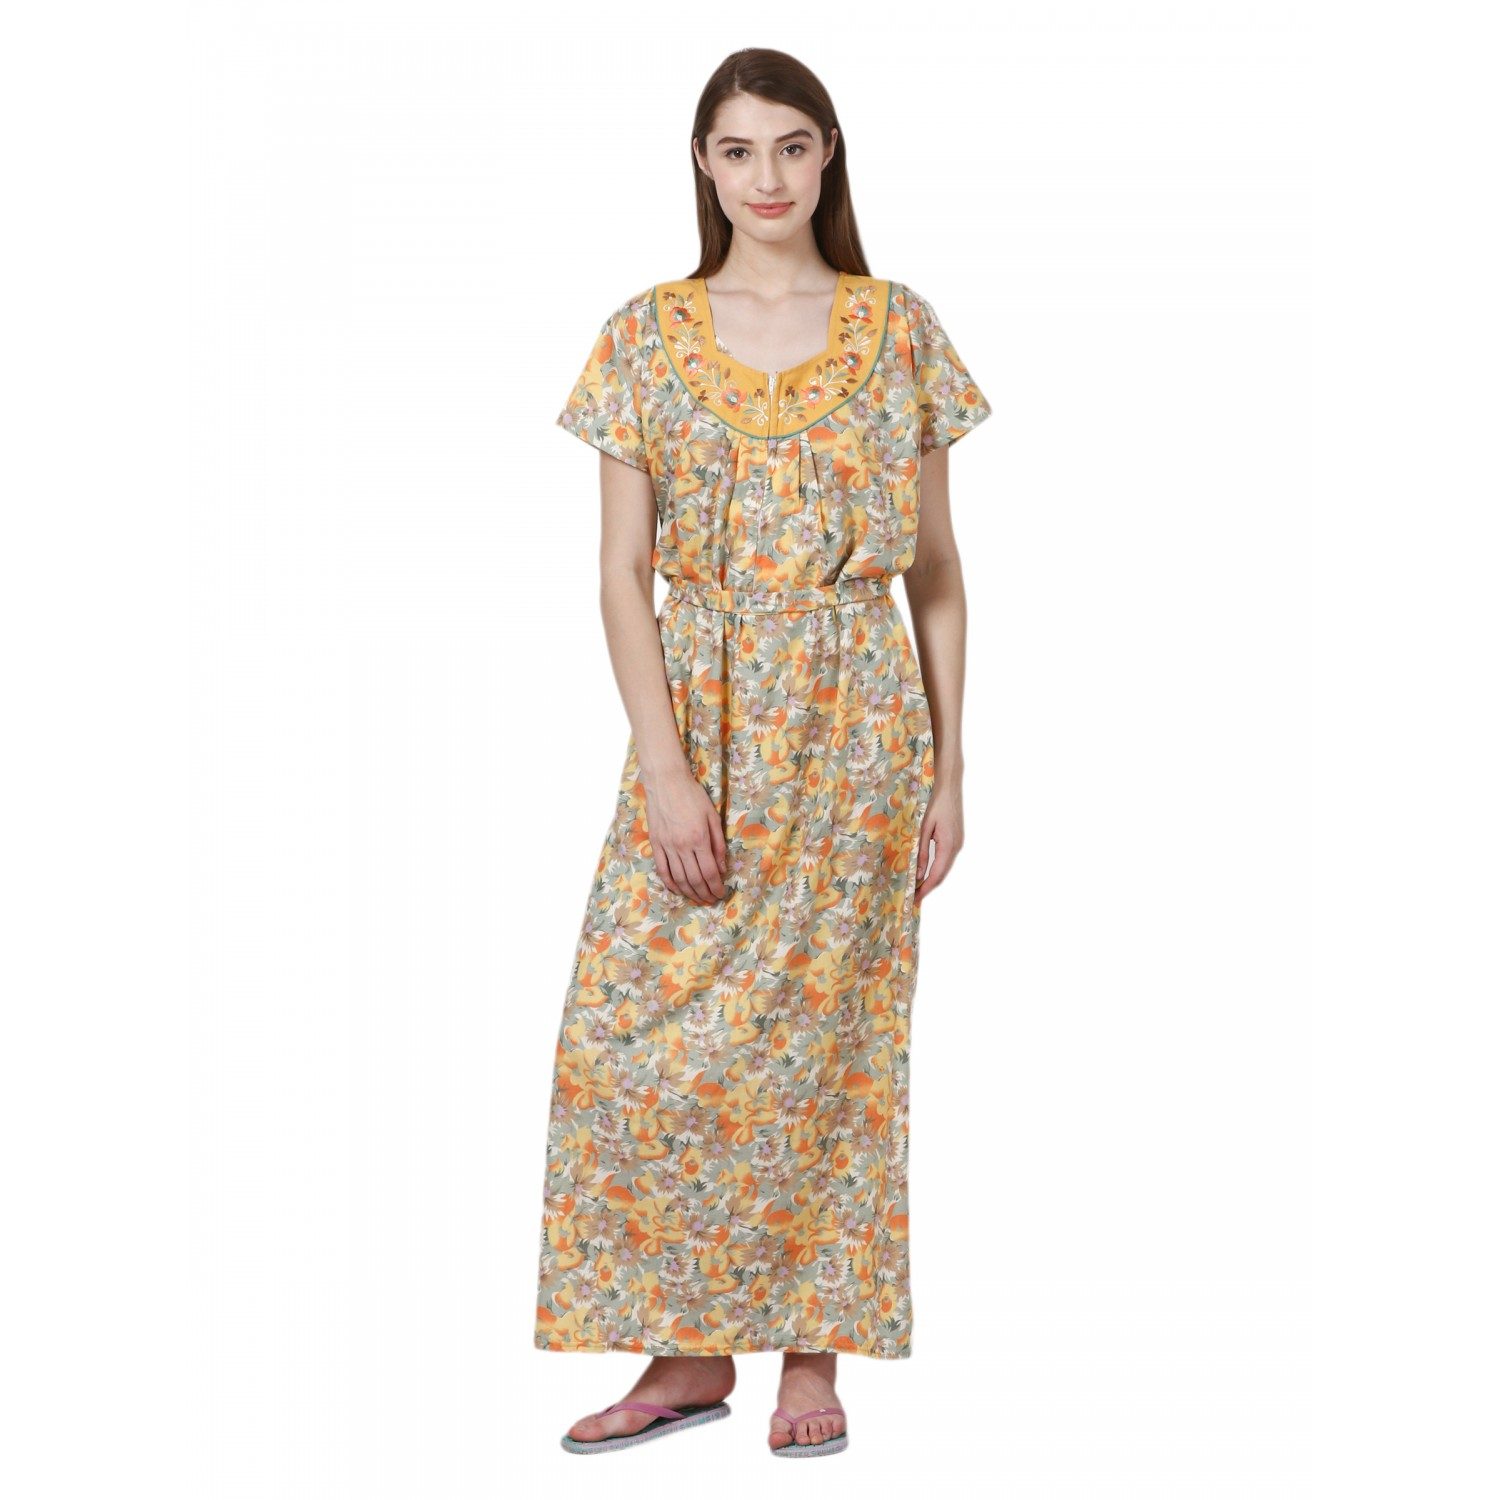 Maternity Wear - Nightdress